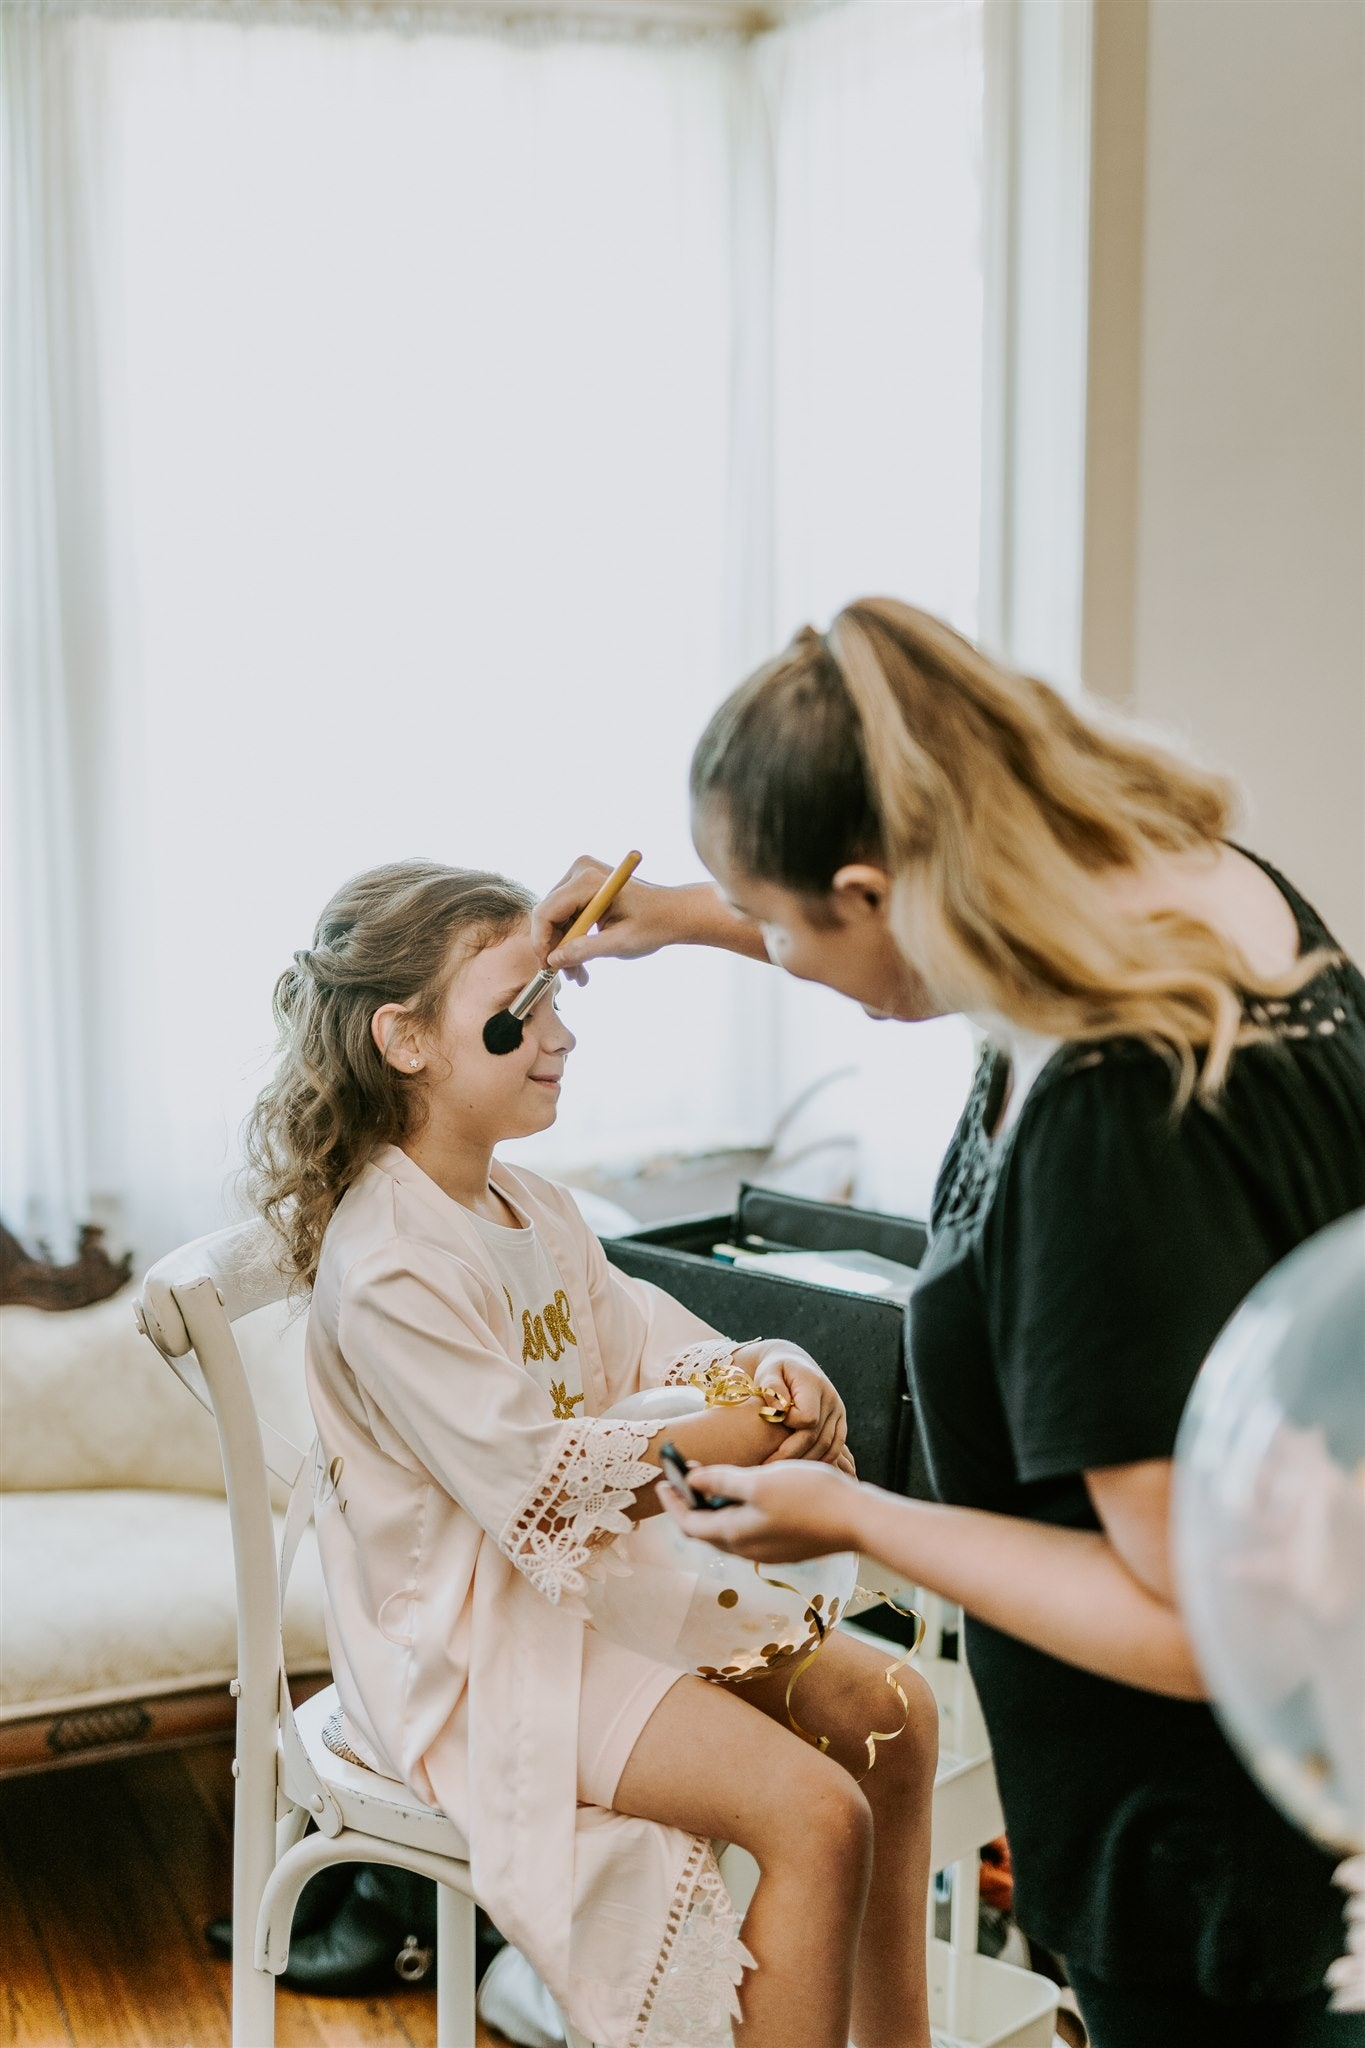 Flower girl getting make-up done